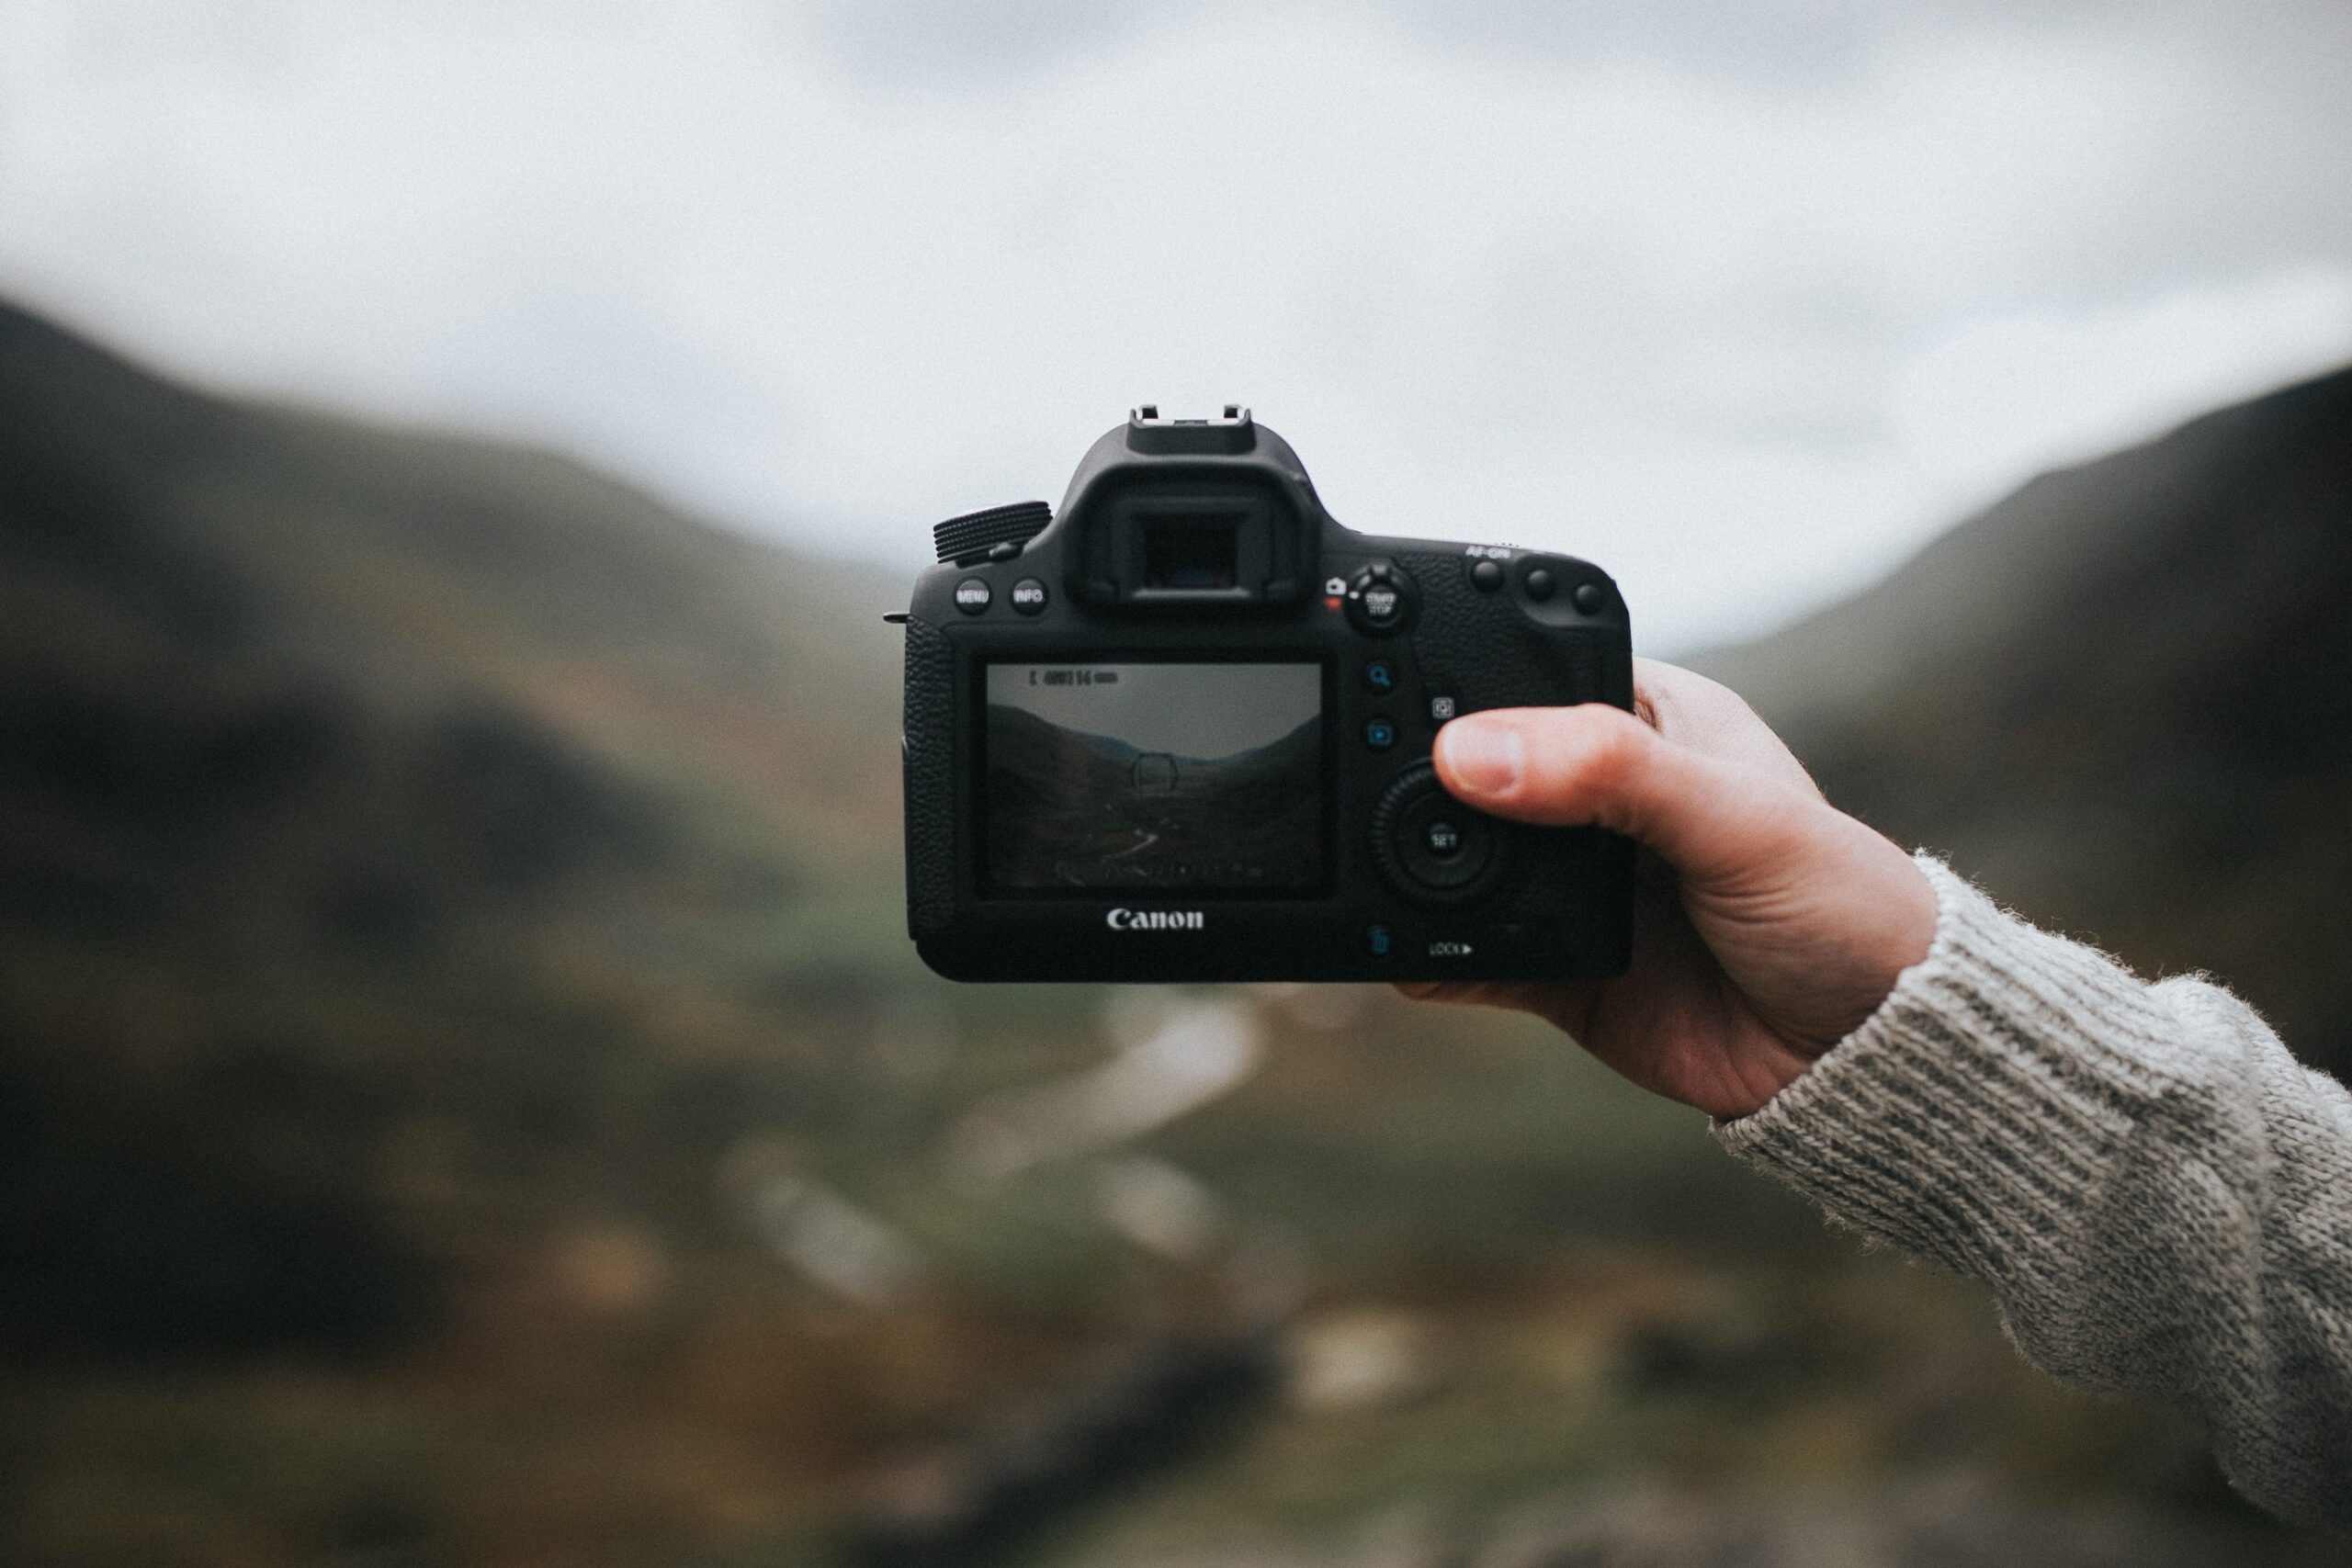 Best Netflix photography documentaries. Taking a picture.